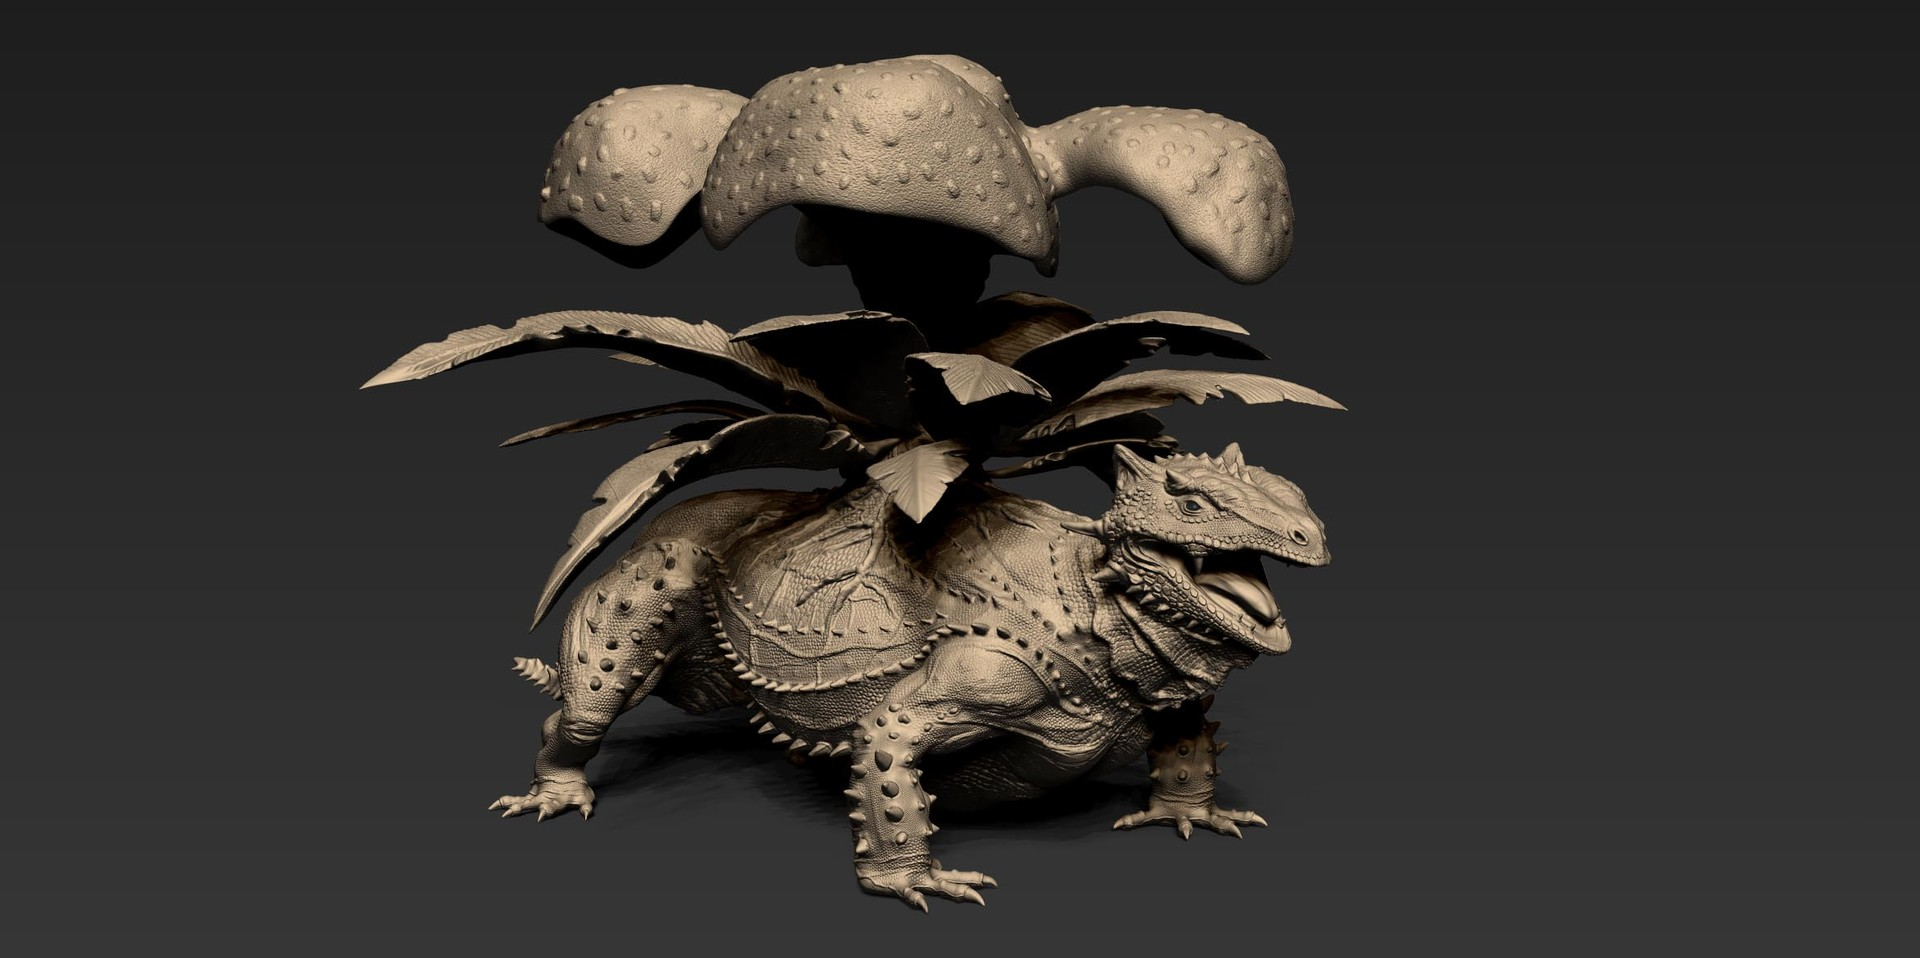 Jin kyeom kim zbrush document 2